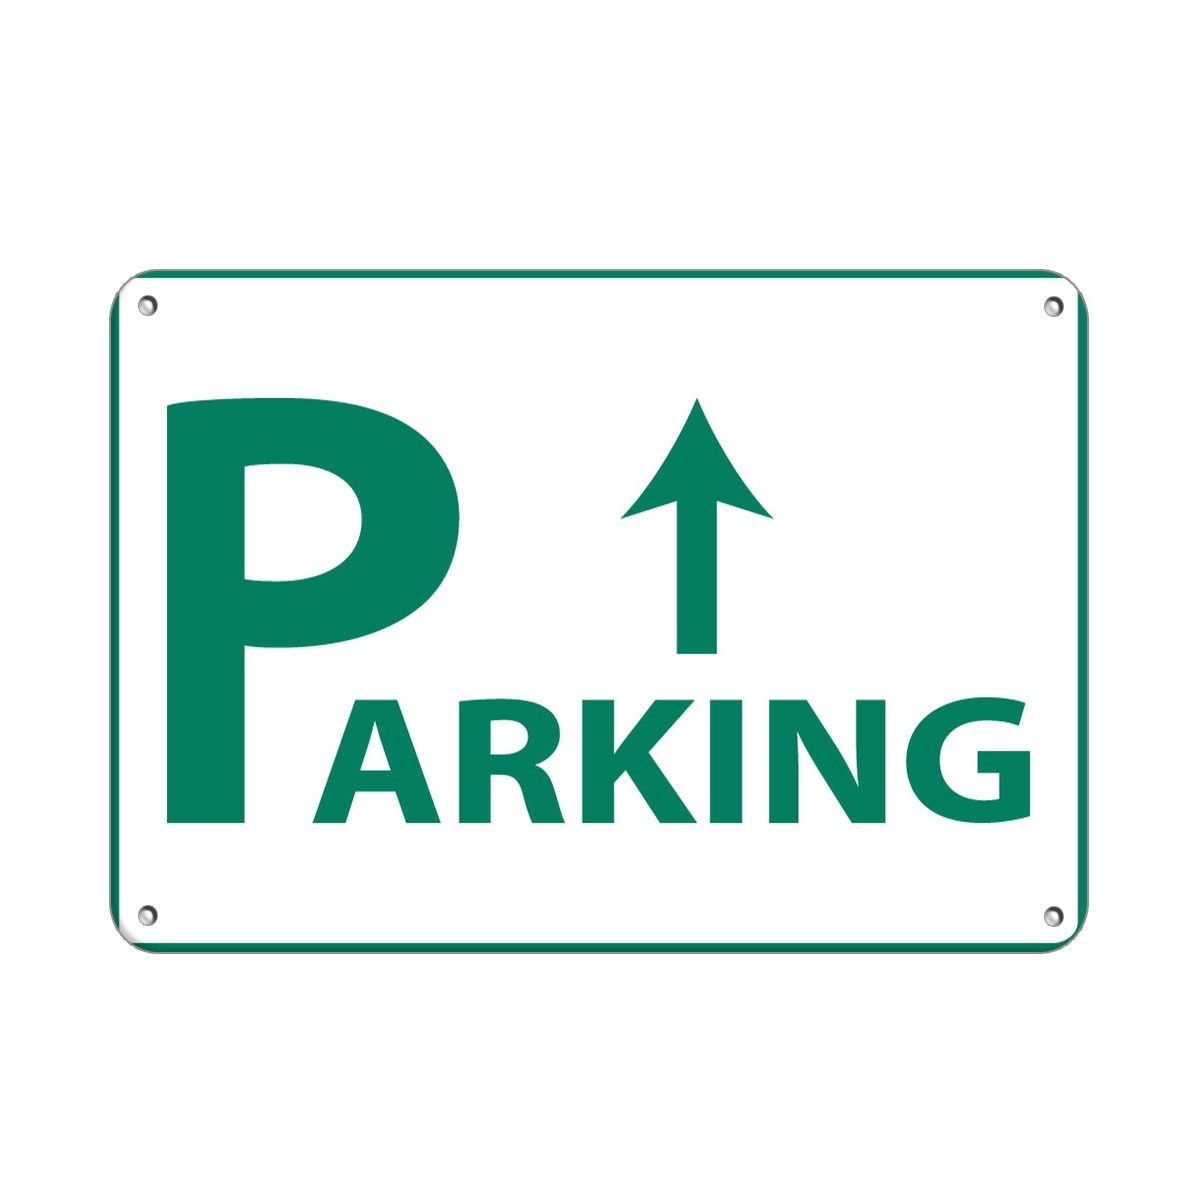 Parking Up Arrow Parking Sign LABEL DECAL STICKER Sticks to Any Surface 10x7